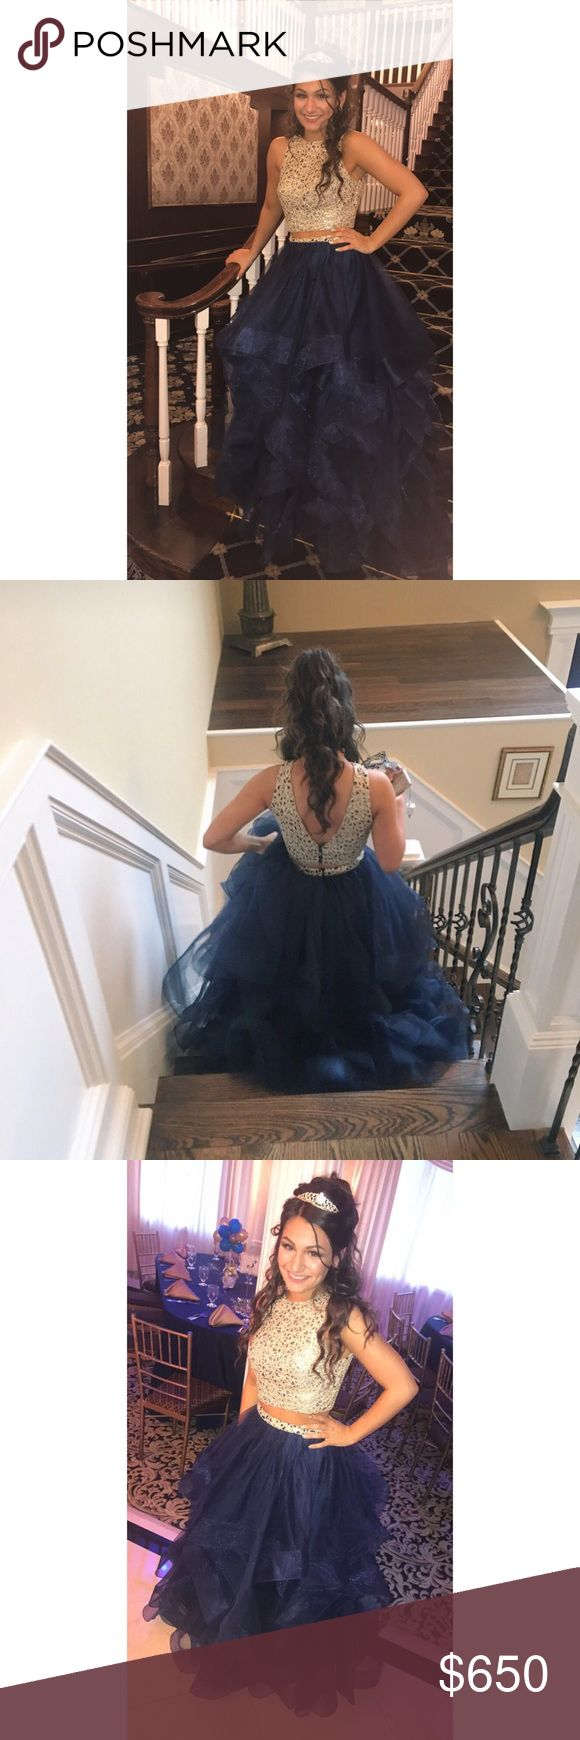 Prom / Sweet Sixteen 16 Dress Two Piece Two Piece Prom / Sweet 16 Sweet Sixteen Dress. Worn once. Navy blue and gold. Two piece. Dresses Prom